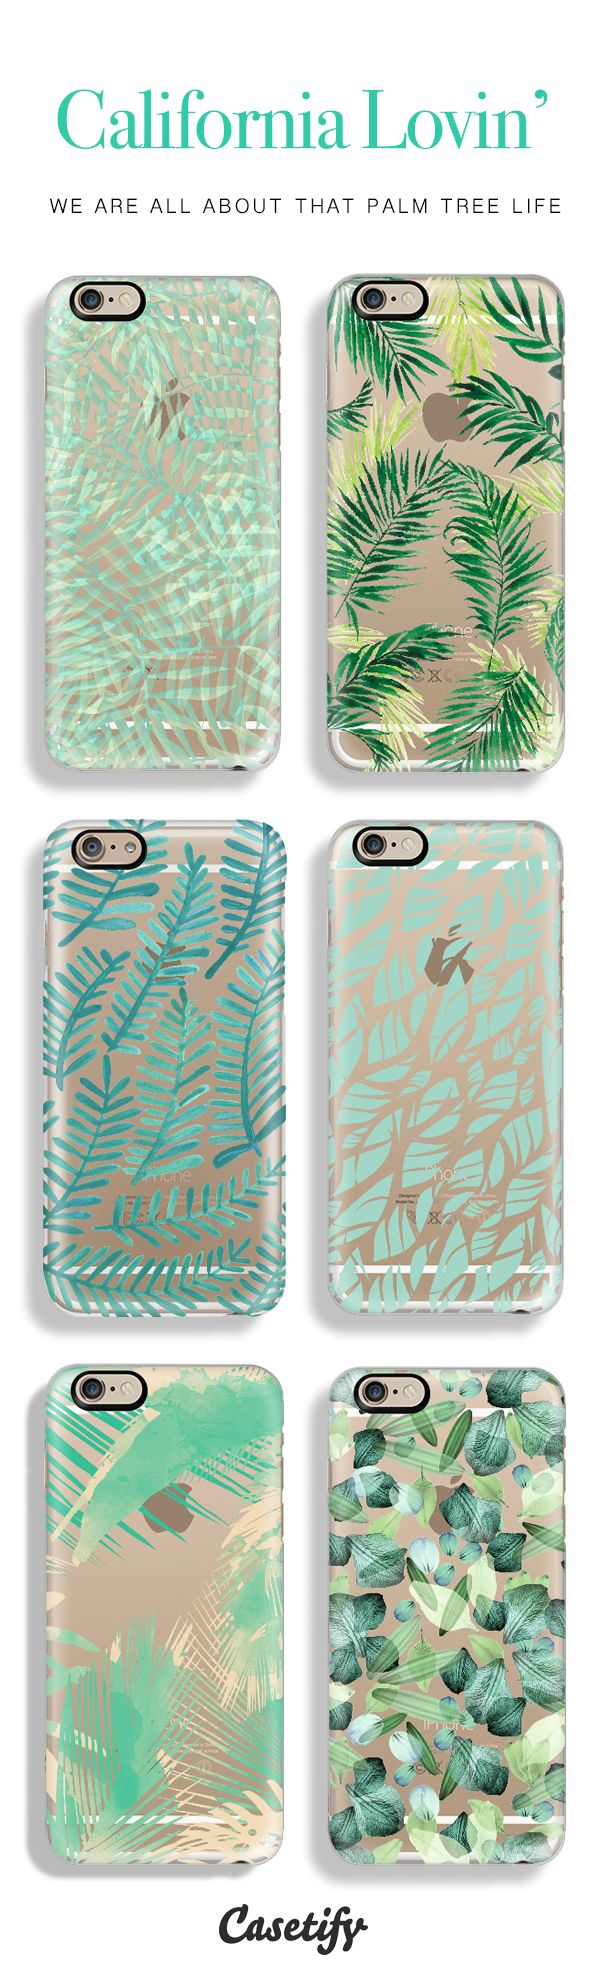 Top 6 palm tree iPhone 6 protective phone cases | Click through to see more iPhone 6 phone case ideas >>> http://www.casetify.com/artworks/hmk234rTVu #gardenart | @casetify